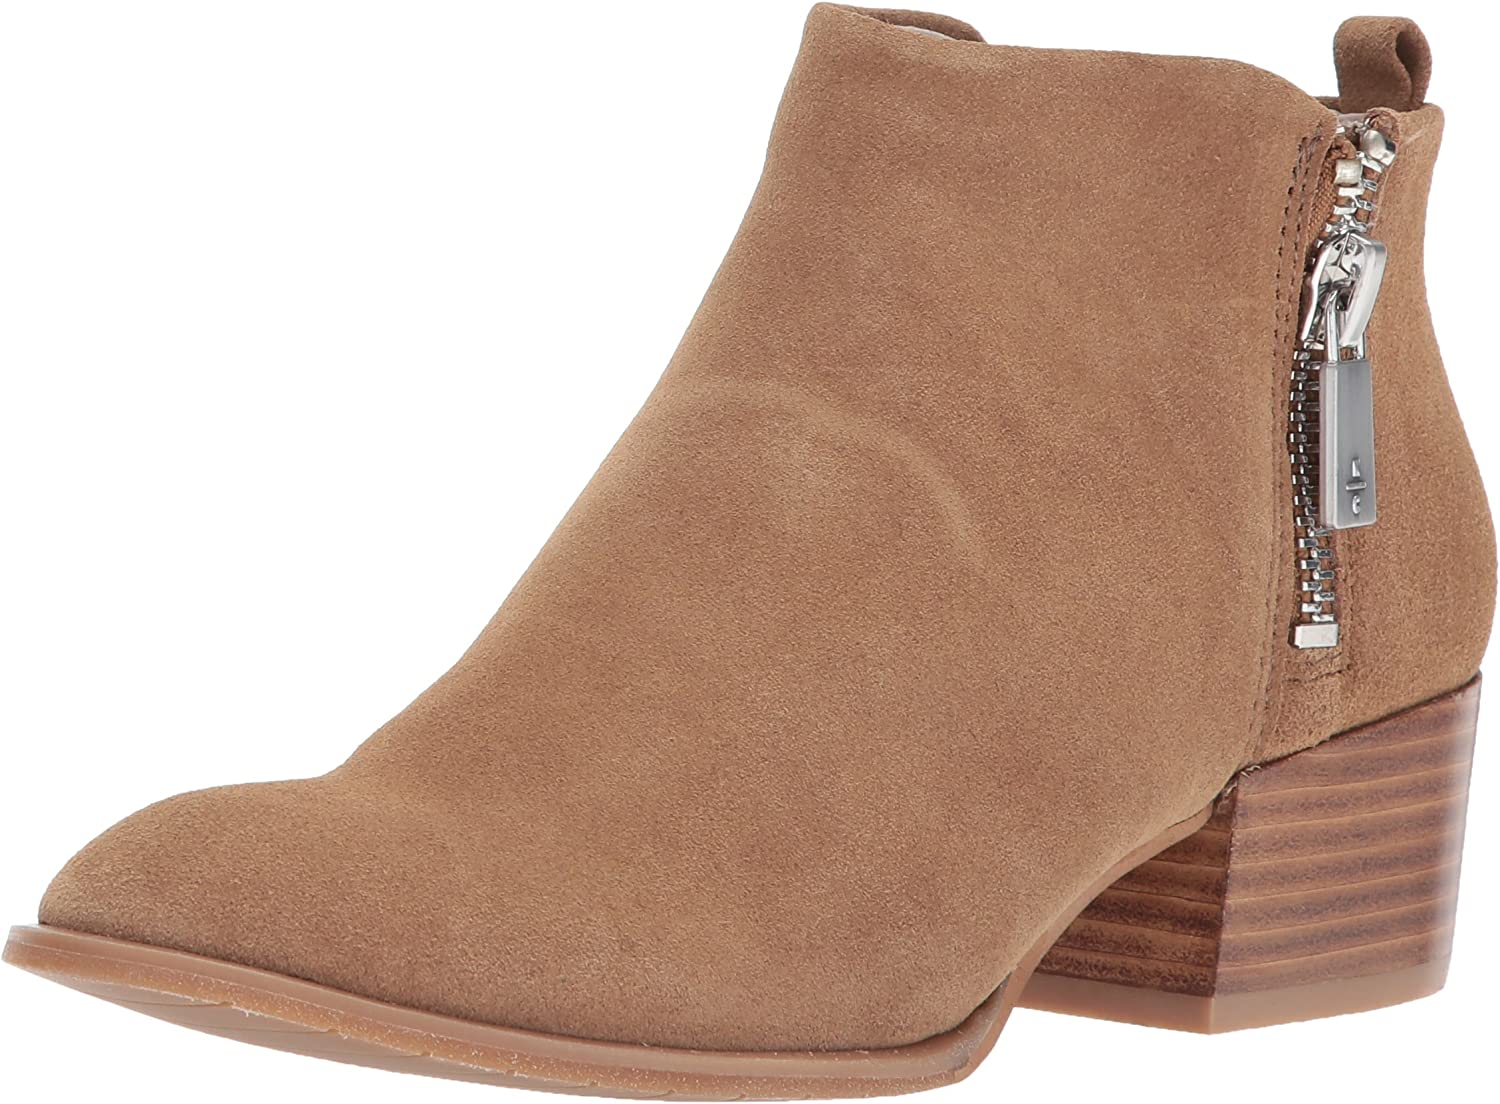 Kenneth Cole New York Womens Addy Western Bootie Double Zip Low Heel Suede Ankle Bootie